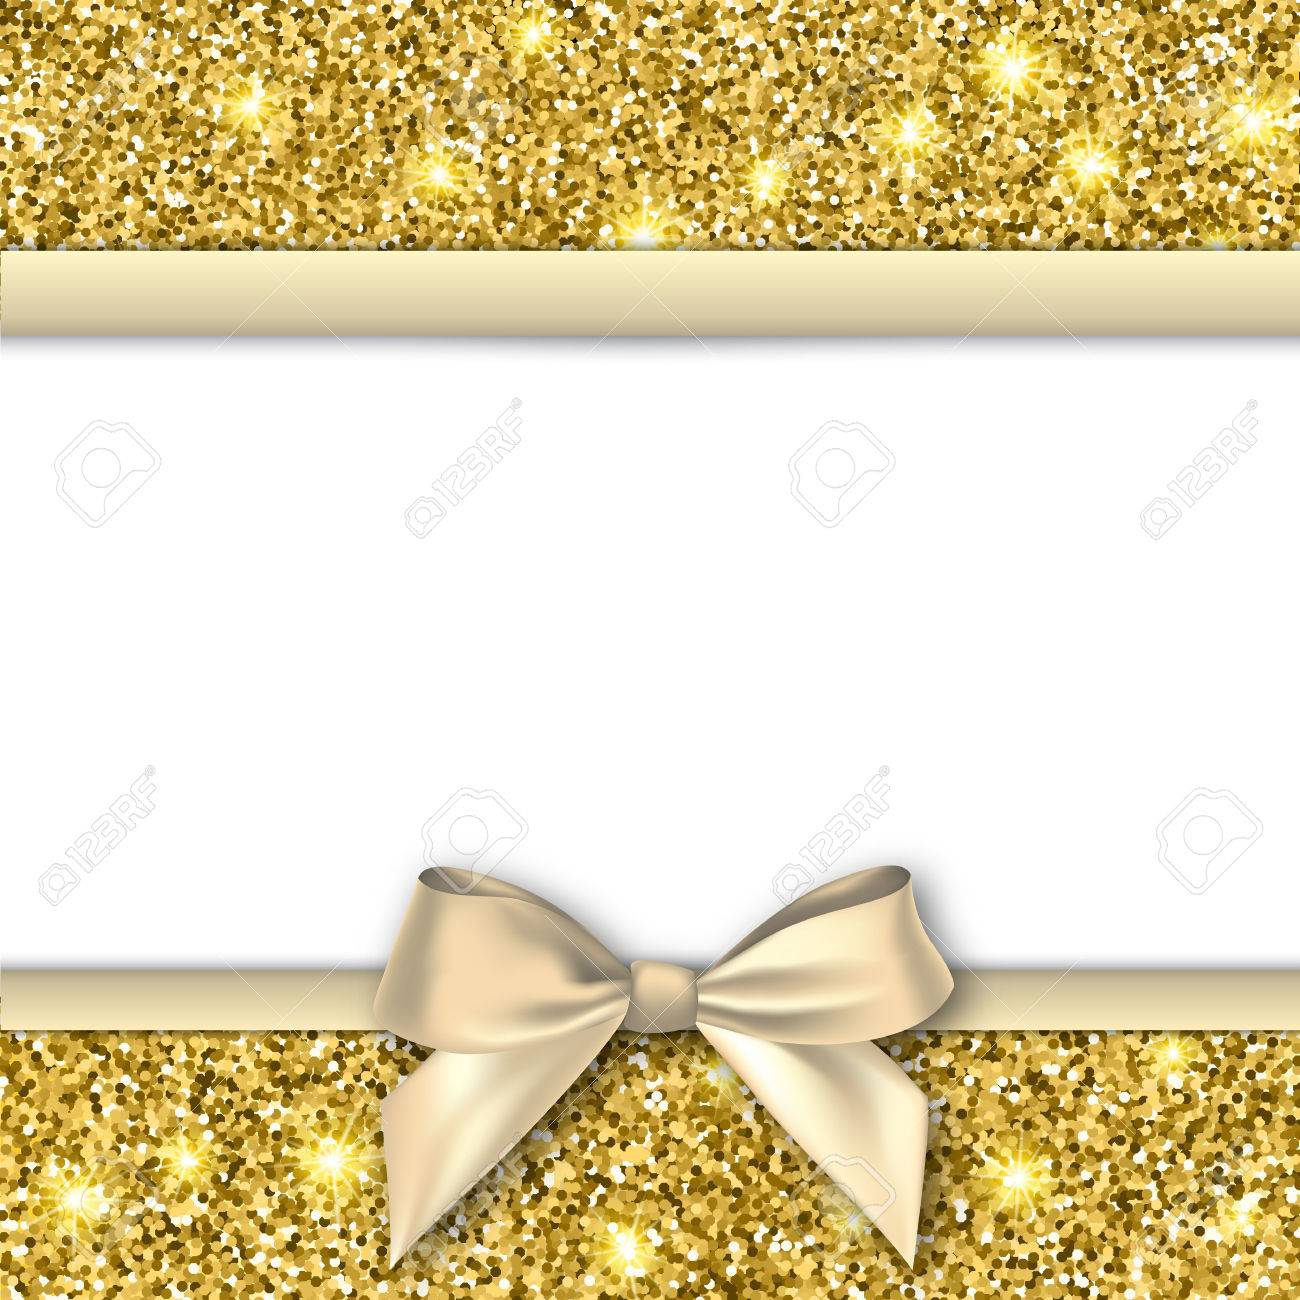 Invitation decorative card template with bow and gold shiny invitation decorative card template with bow and gold shiny glitter gold background for flyer stopboris Images